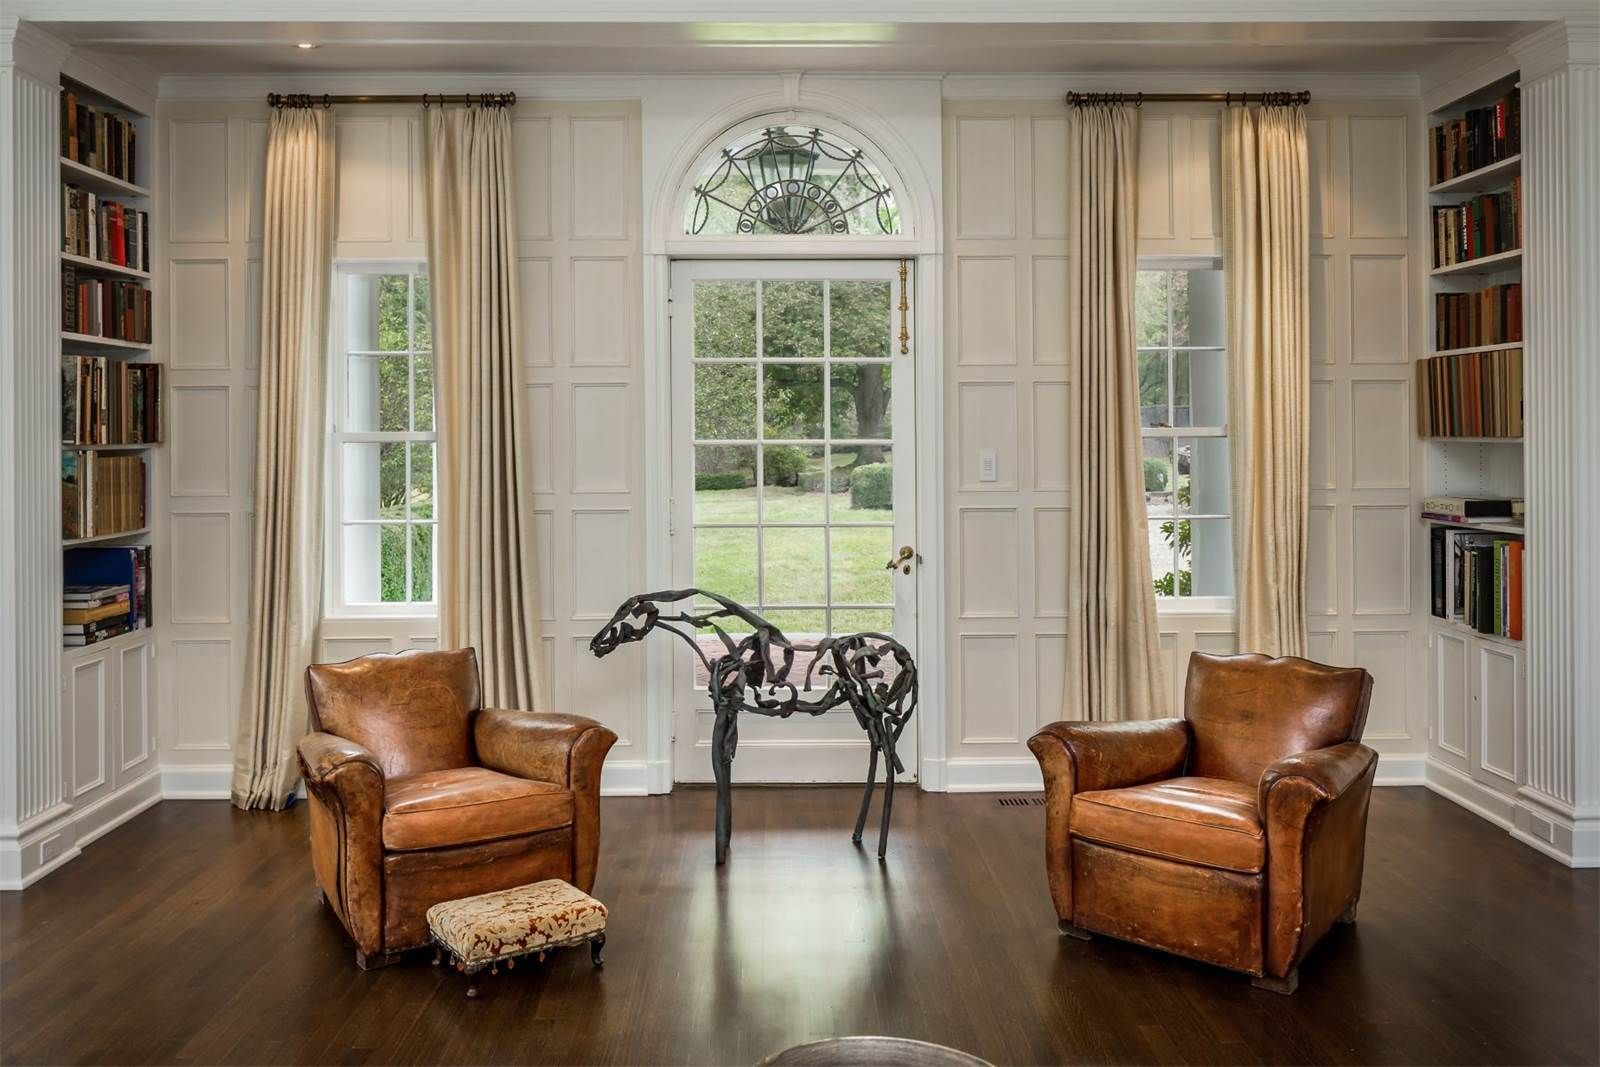 Home interior view view this luxury home located at  lambert road new canaan